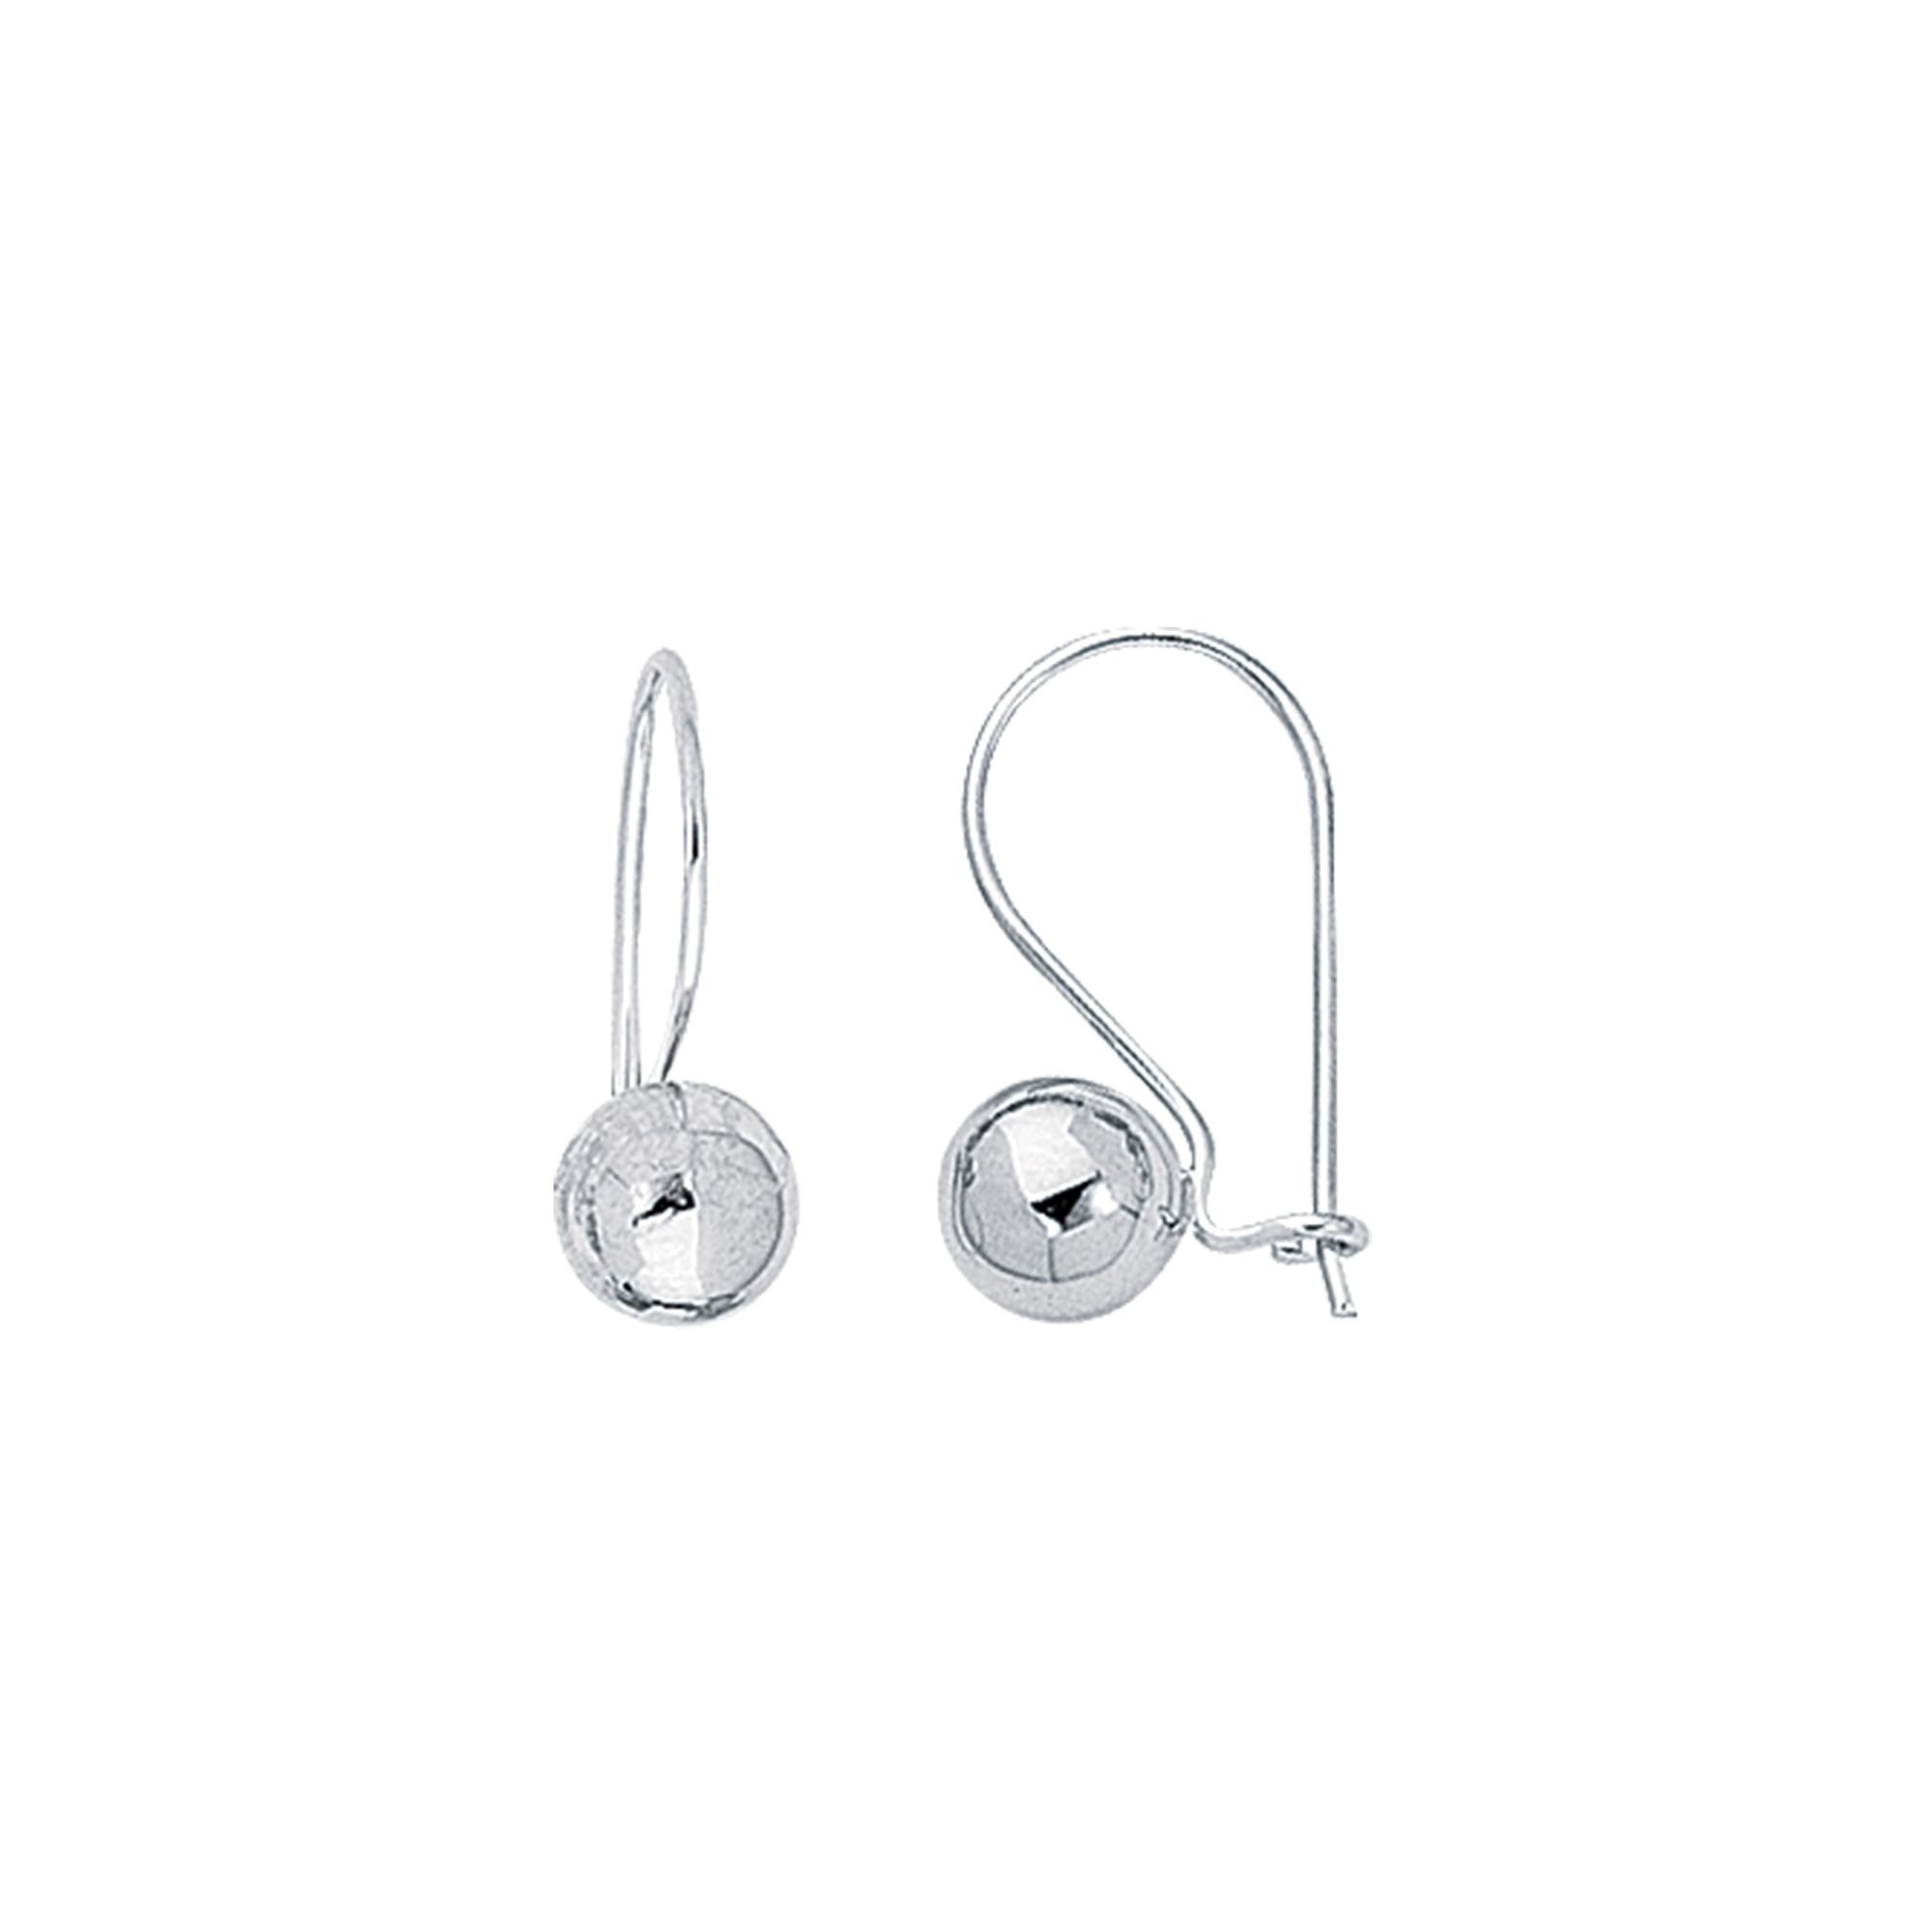 Finejewelers 14 Kt White Gold 7.0mm Round Ball Leverback Earring